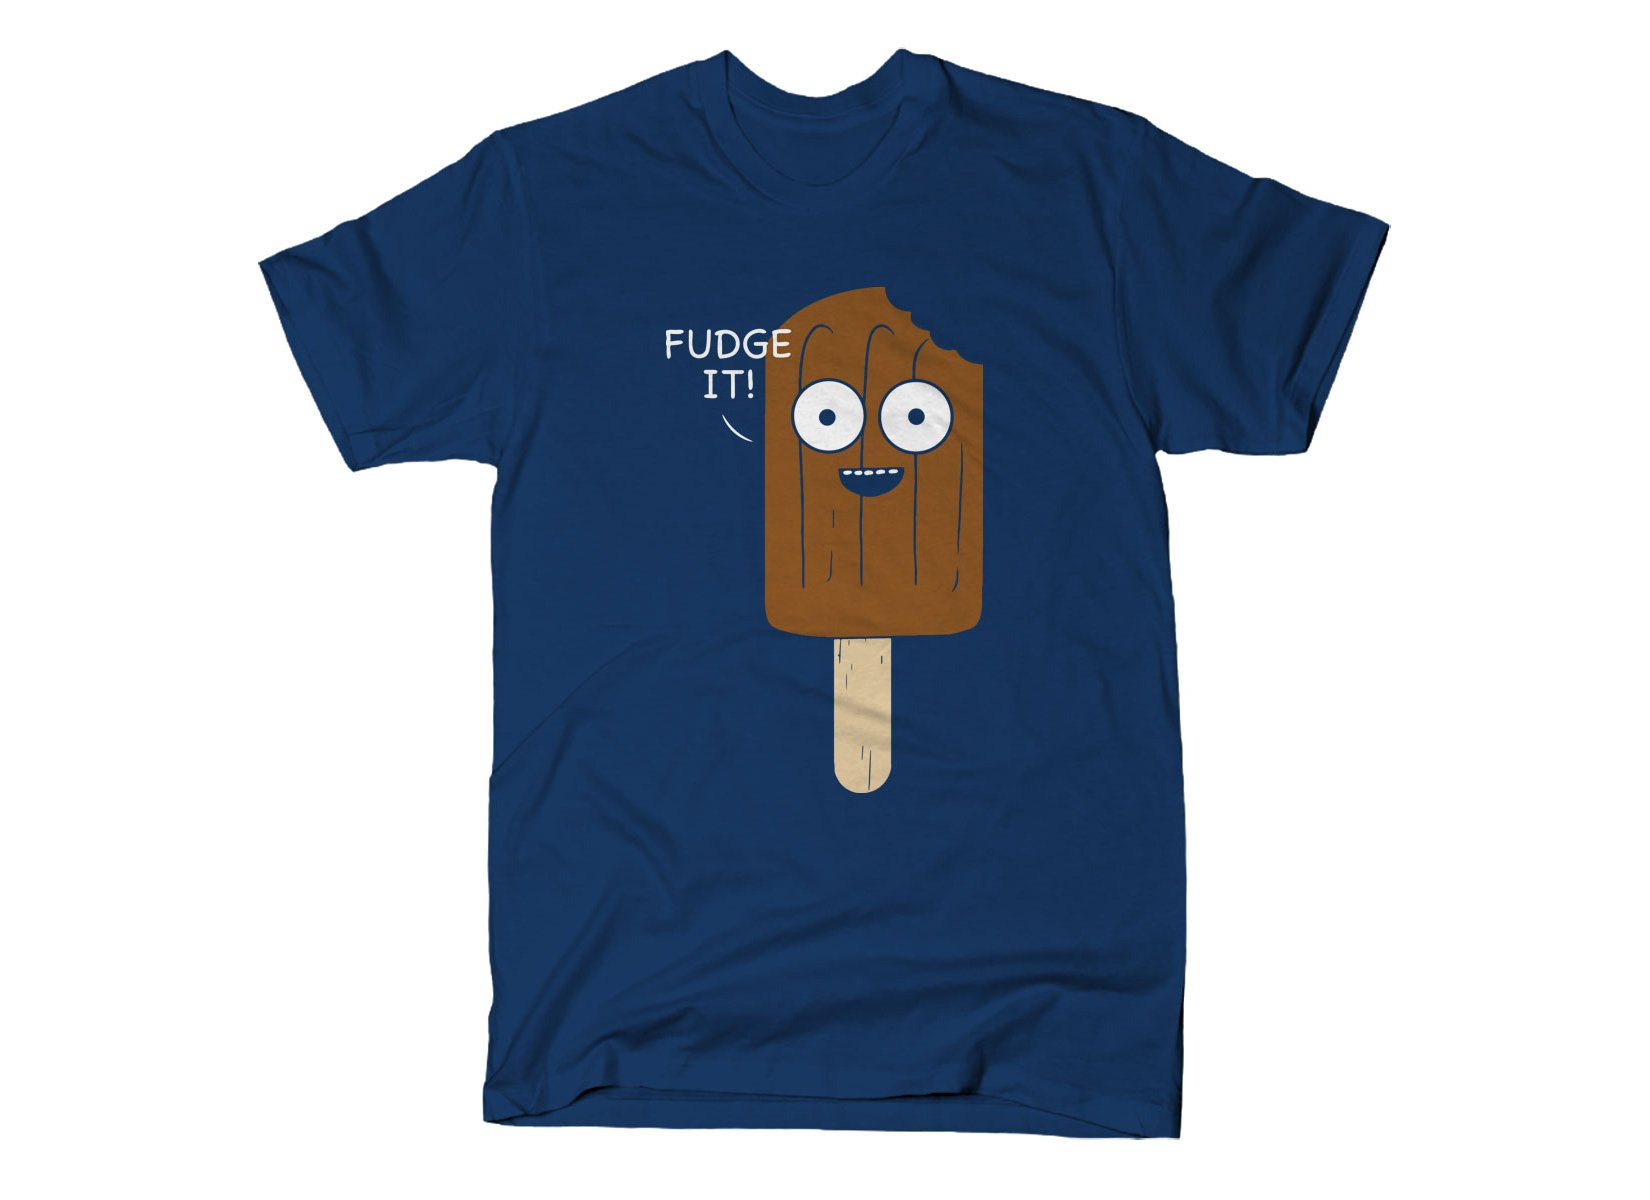 Fudge It! on Mens T-Shirt